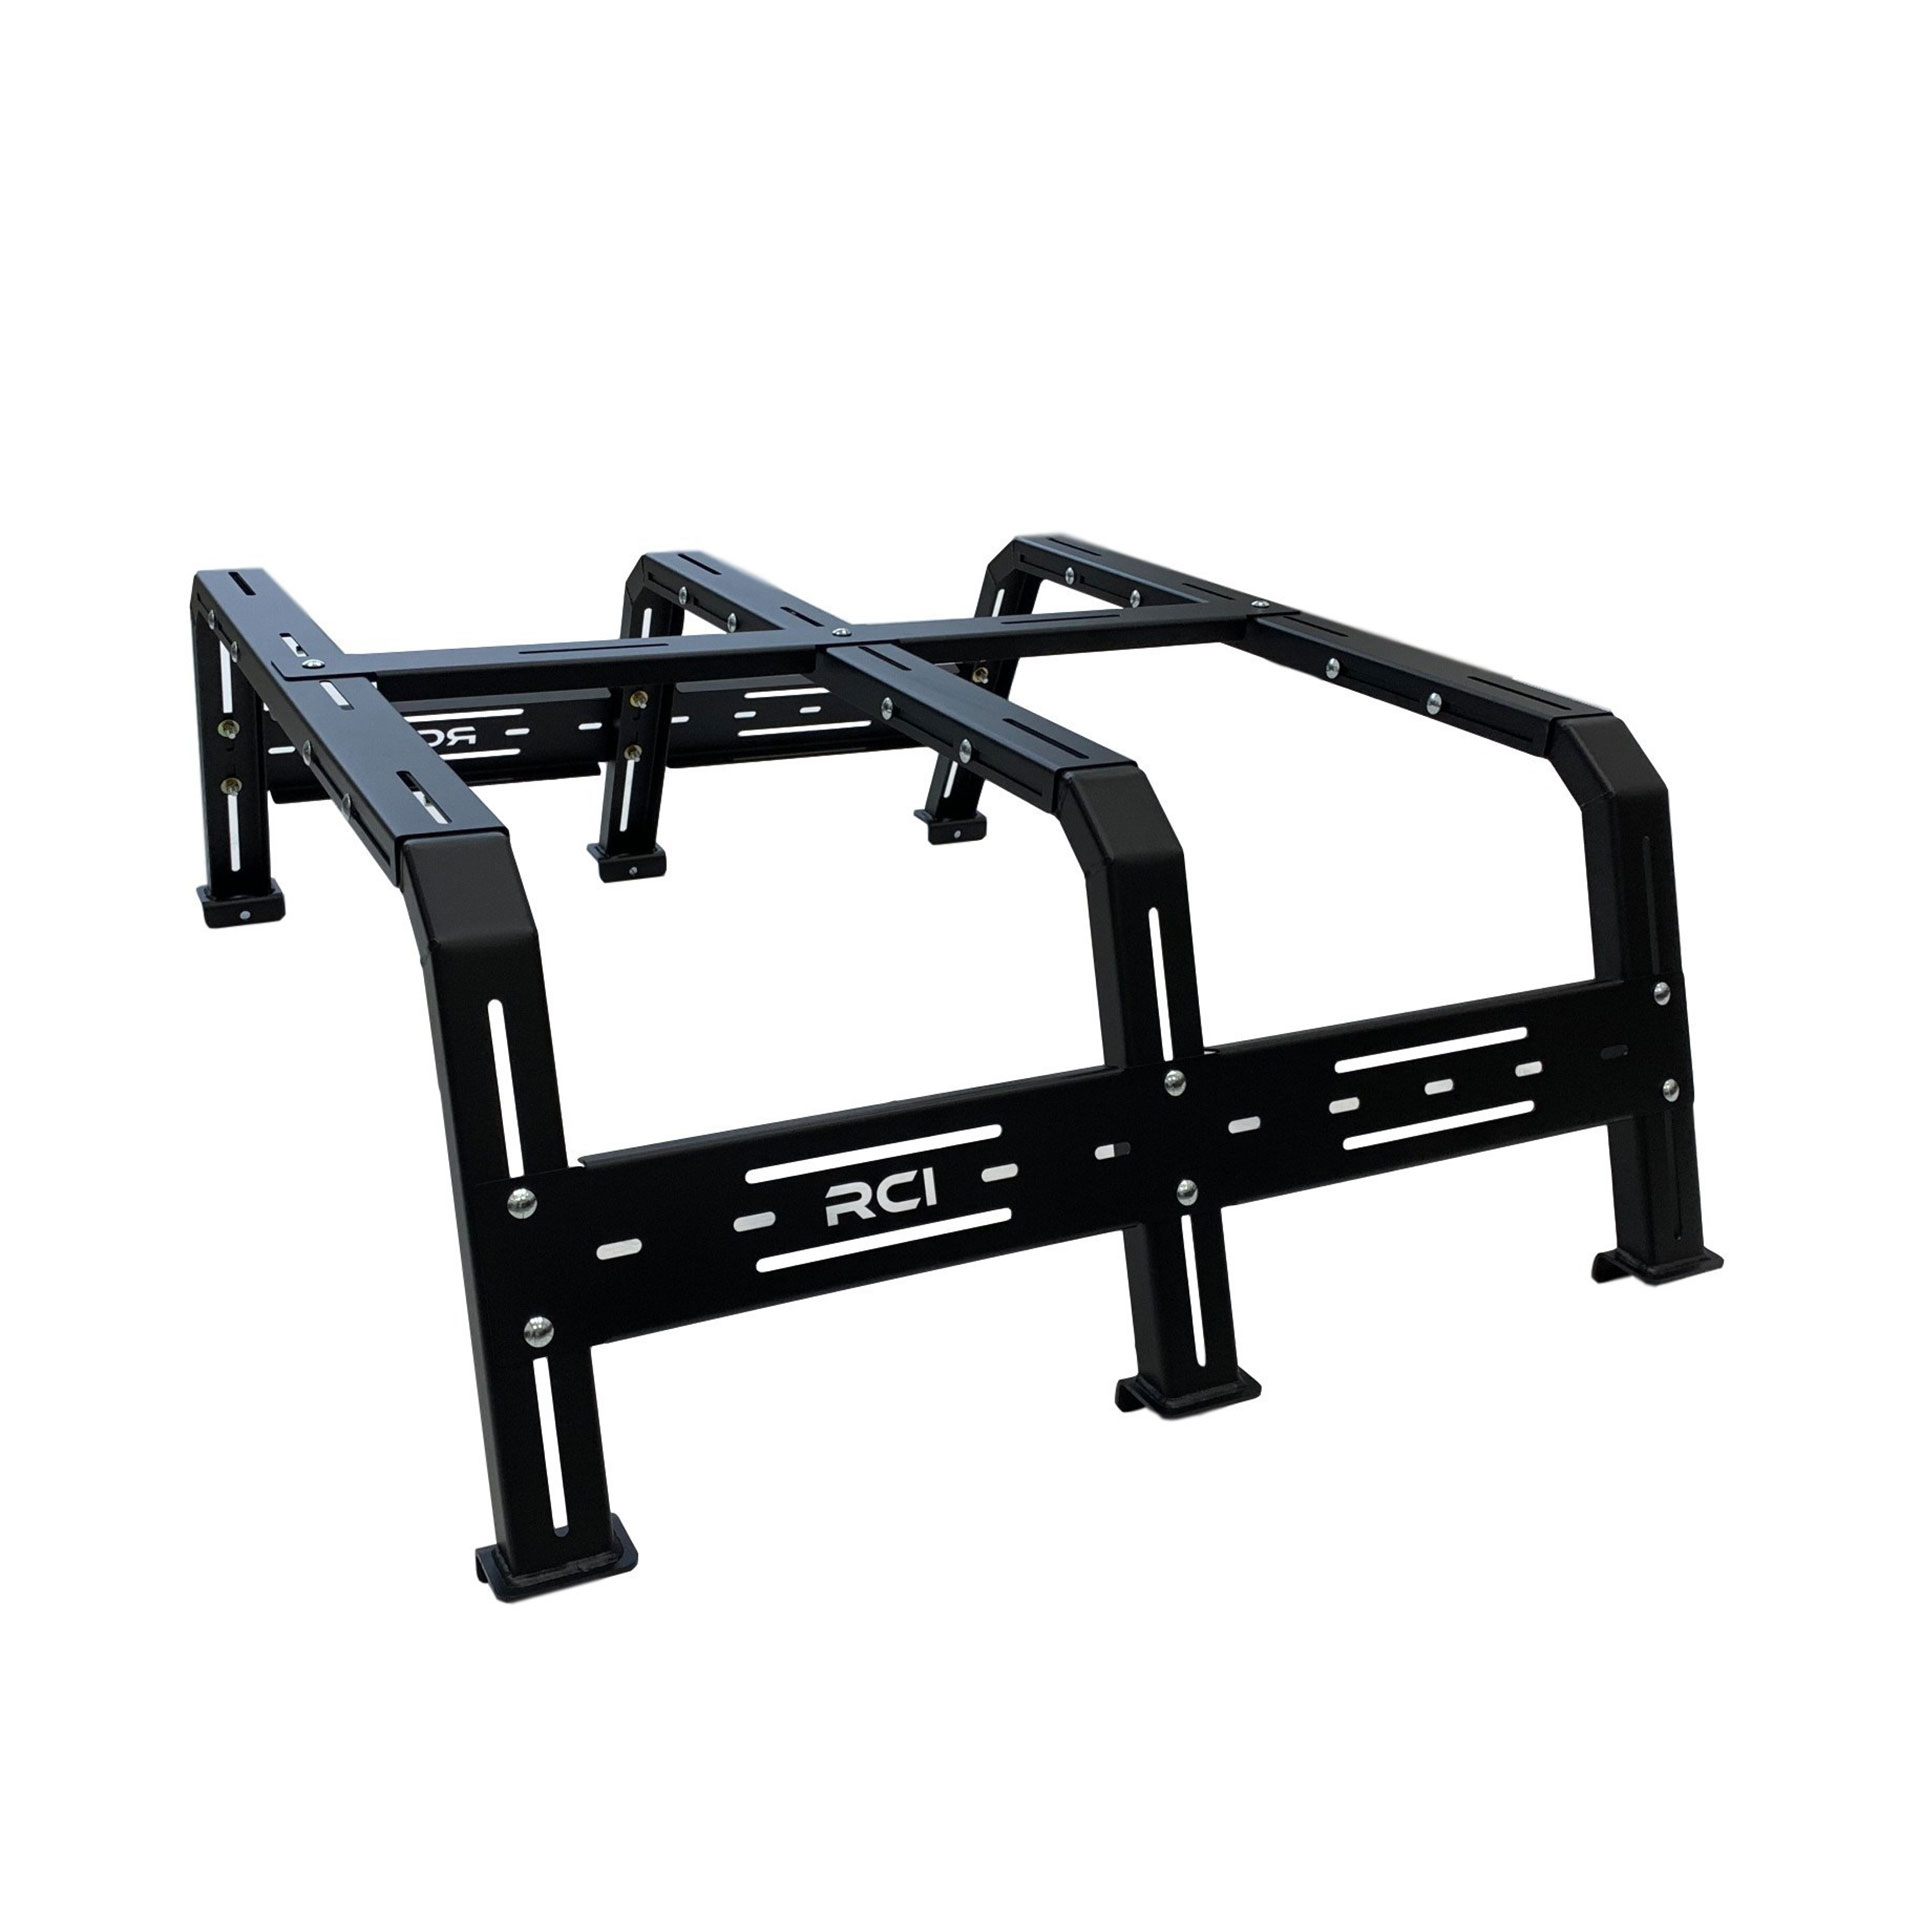 RCI 18 in. Adjustable Bed Rack